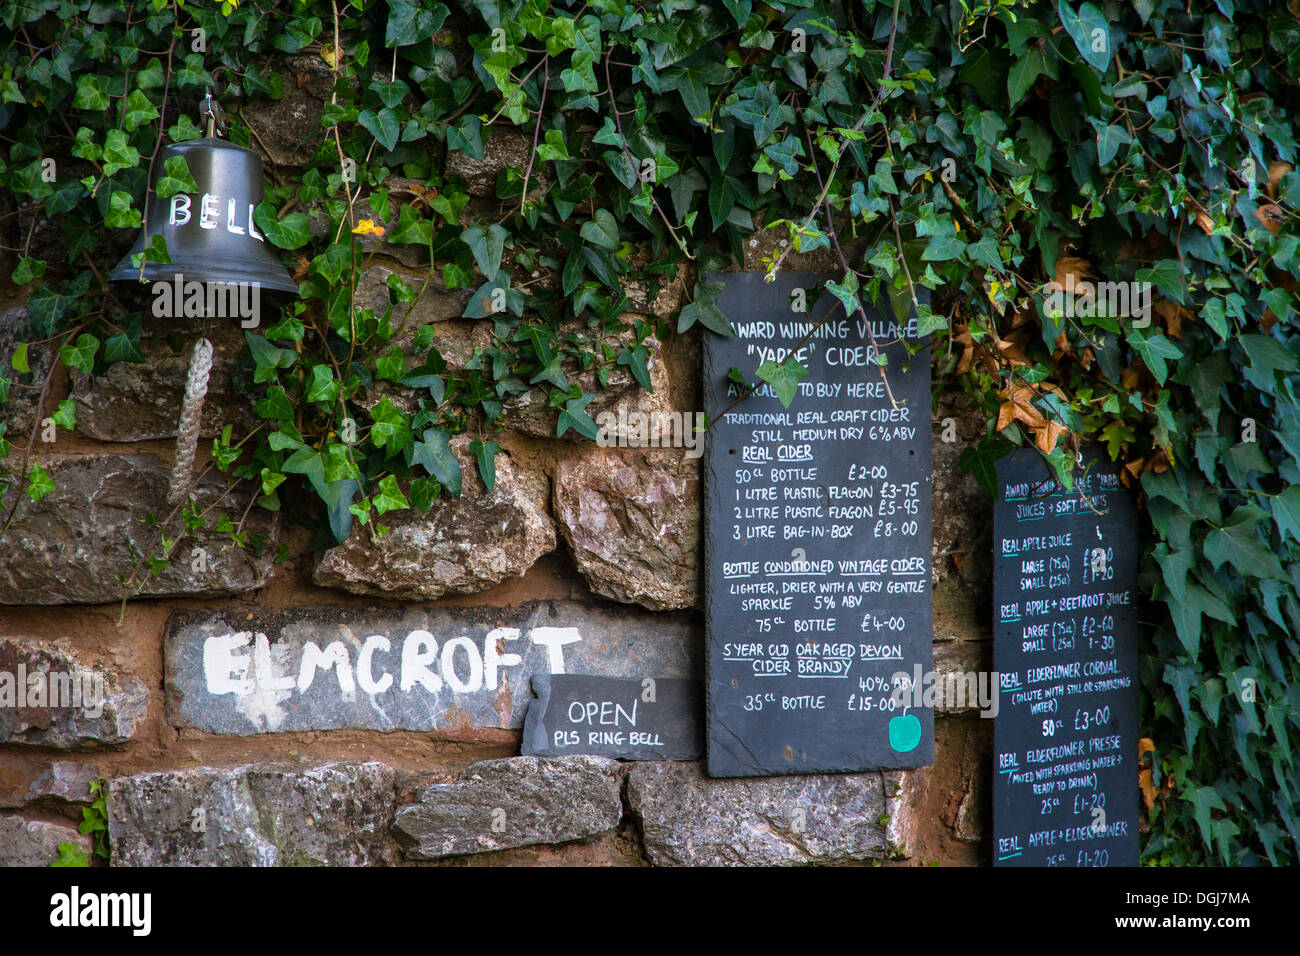 Signs for local produce in a rural setting. - Stock Image